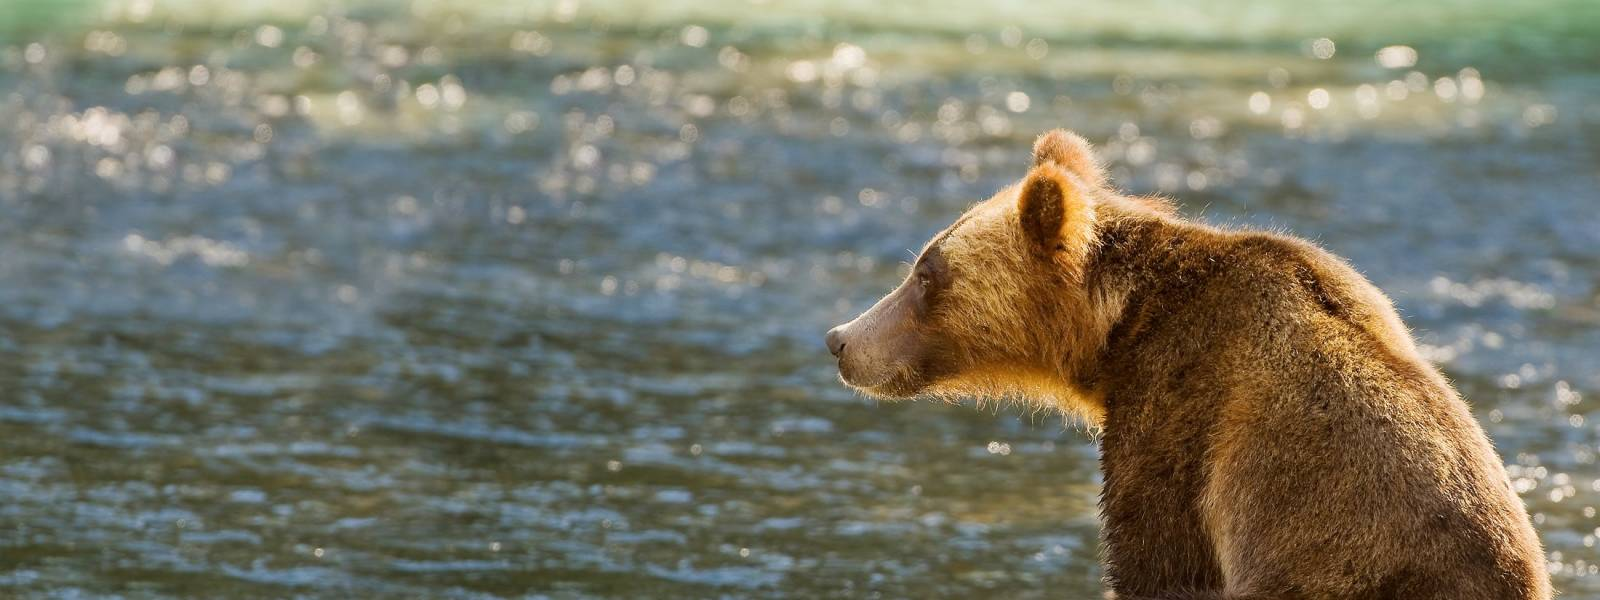 a brown bear swimming in a body of water